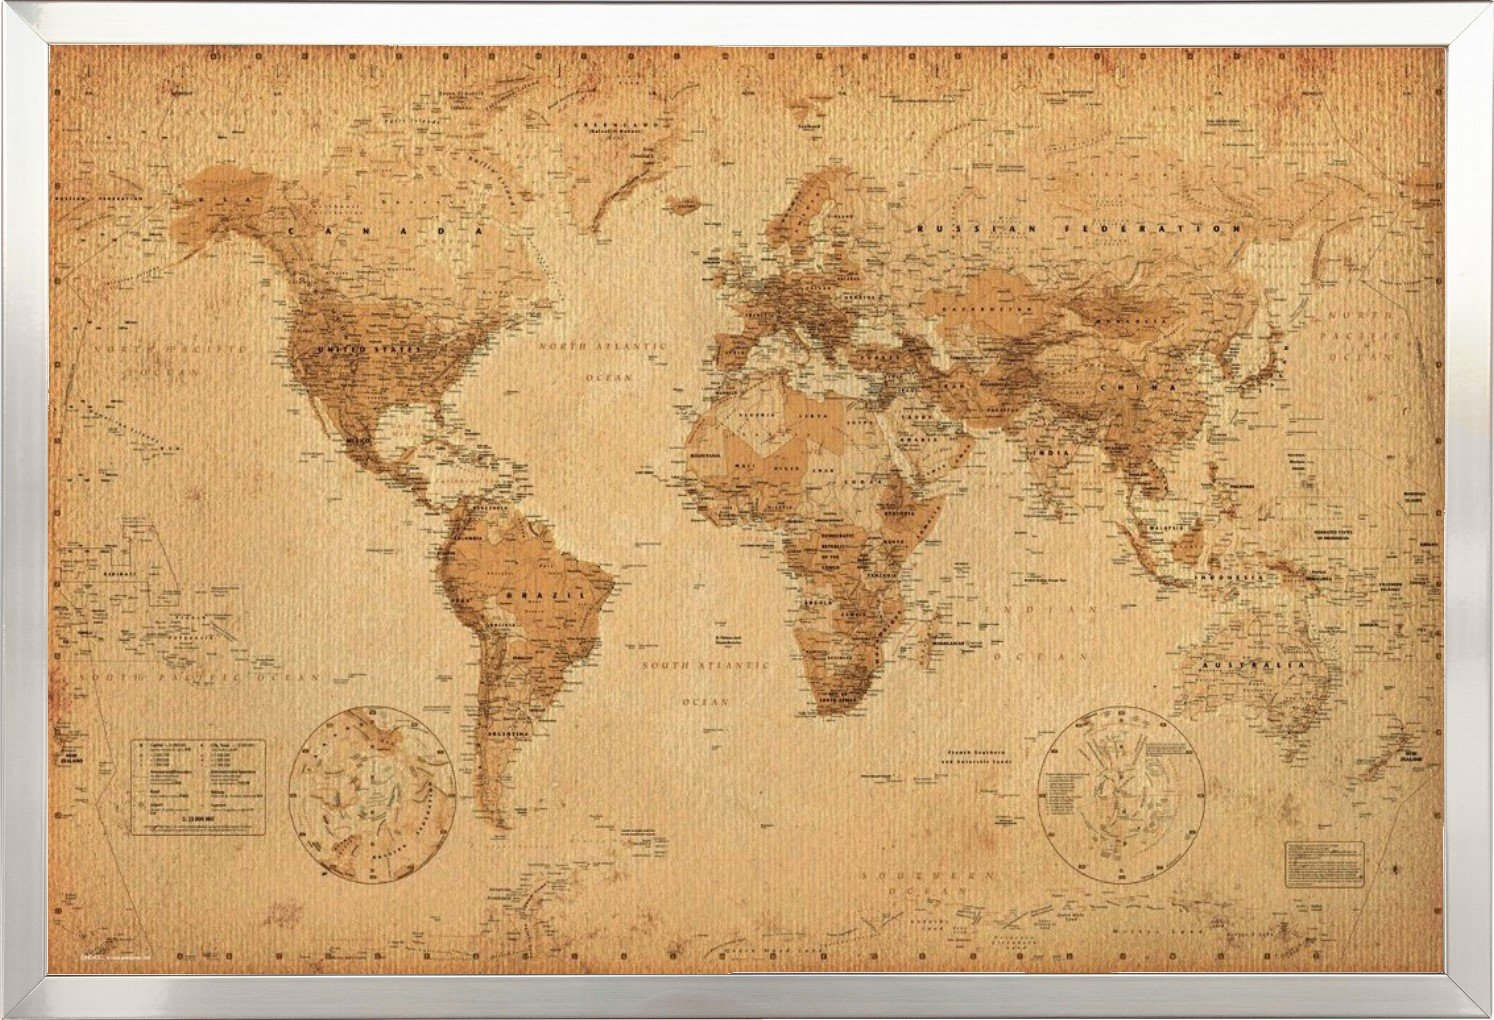 World map vintage style poster print amazon home kitchen gumiabroncs Image collections